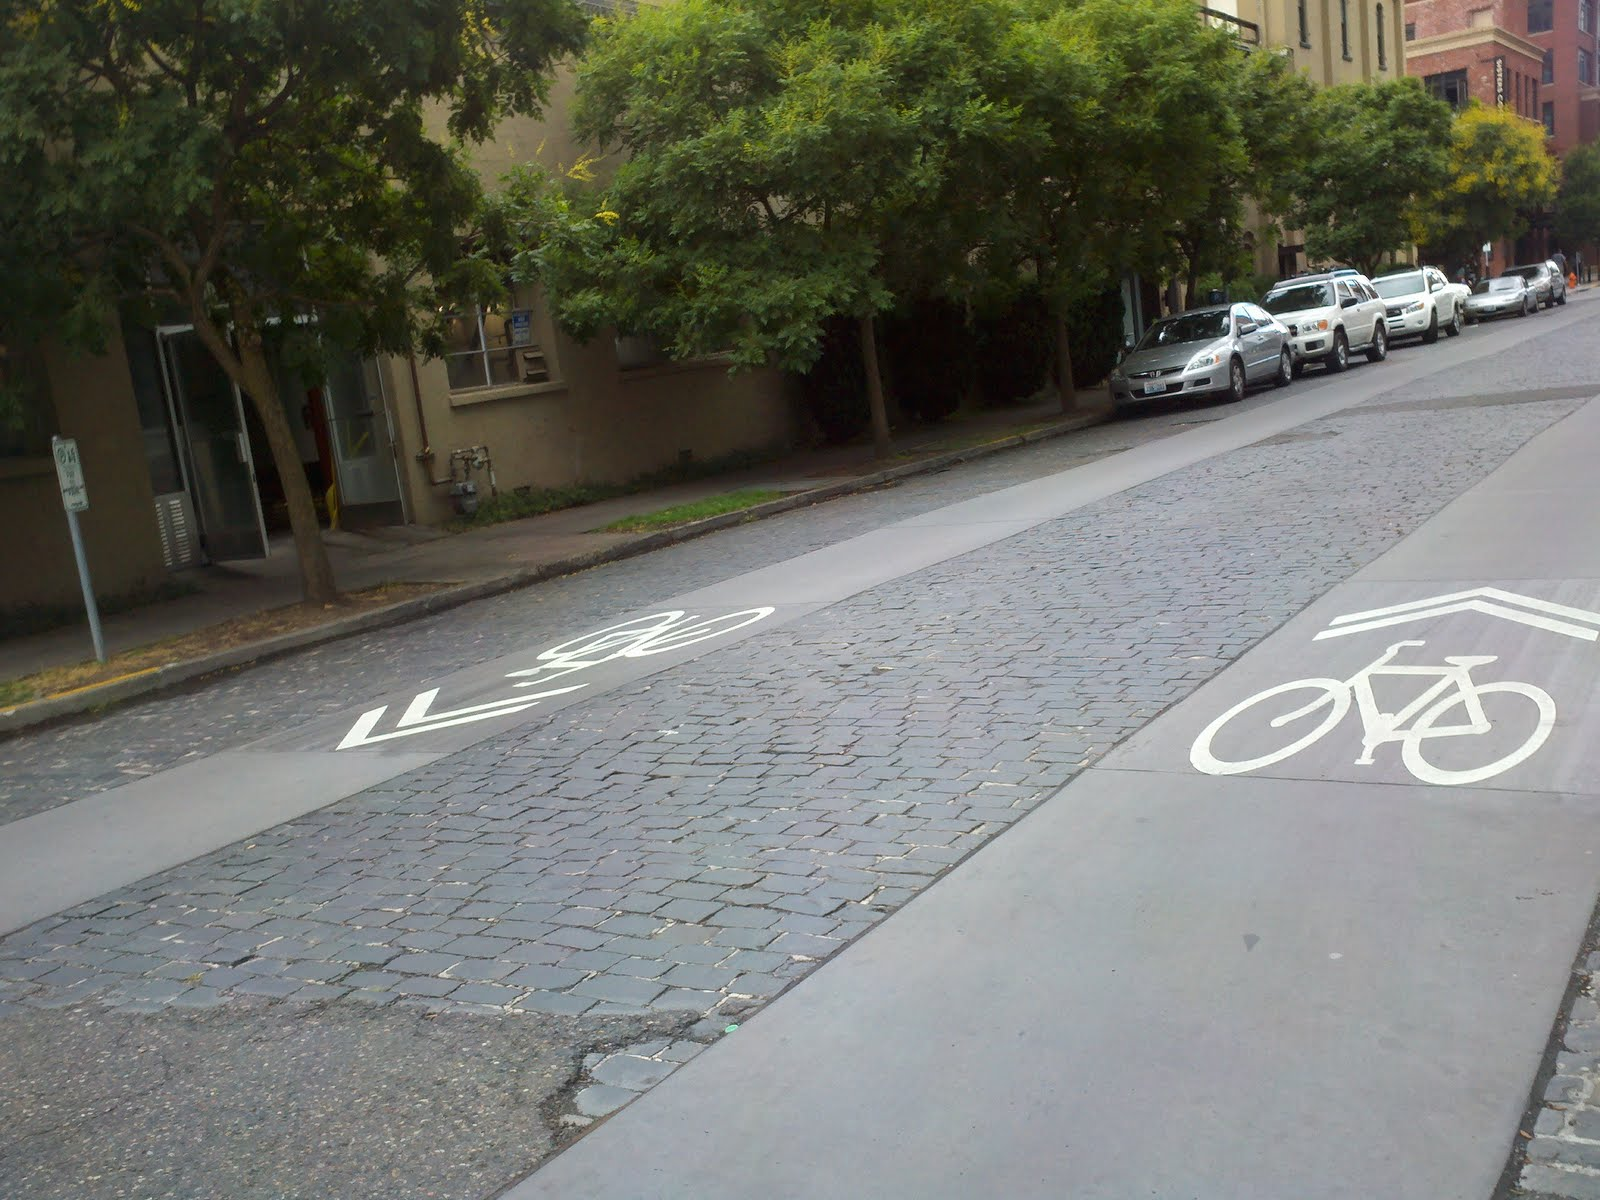 Concrete Cobble Street : Quaint cobblestone street ripped up for bike paths in nw